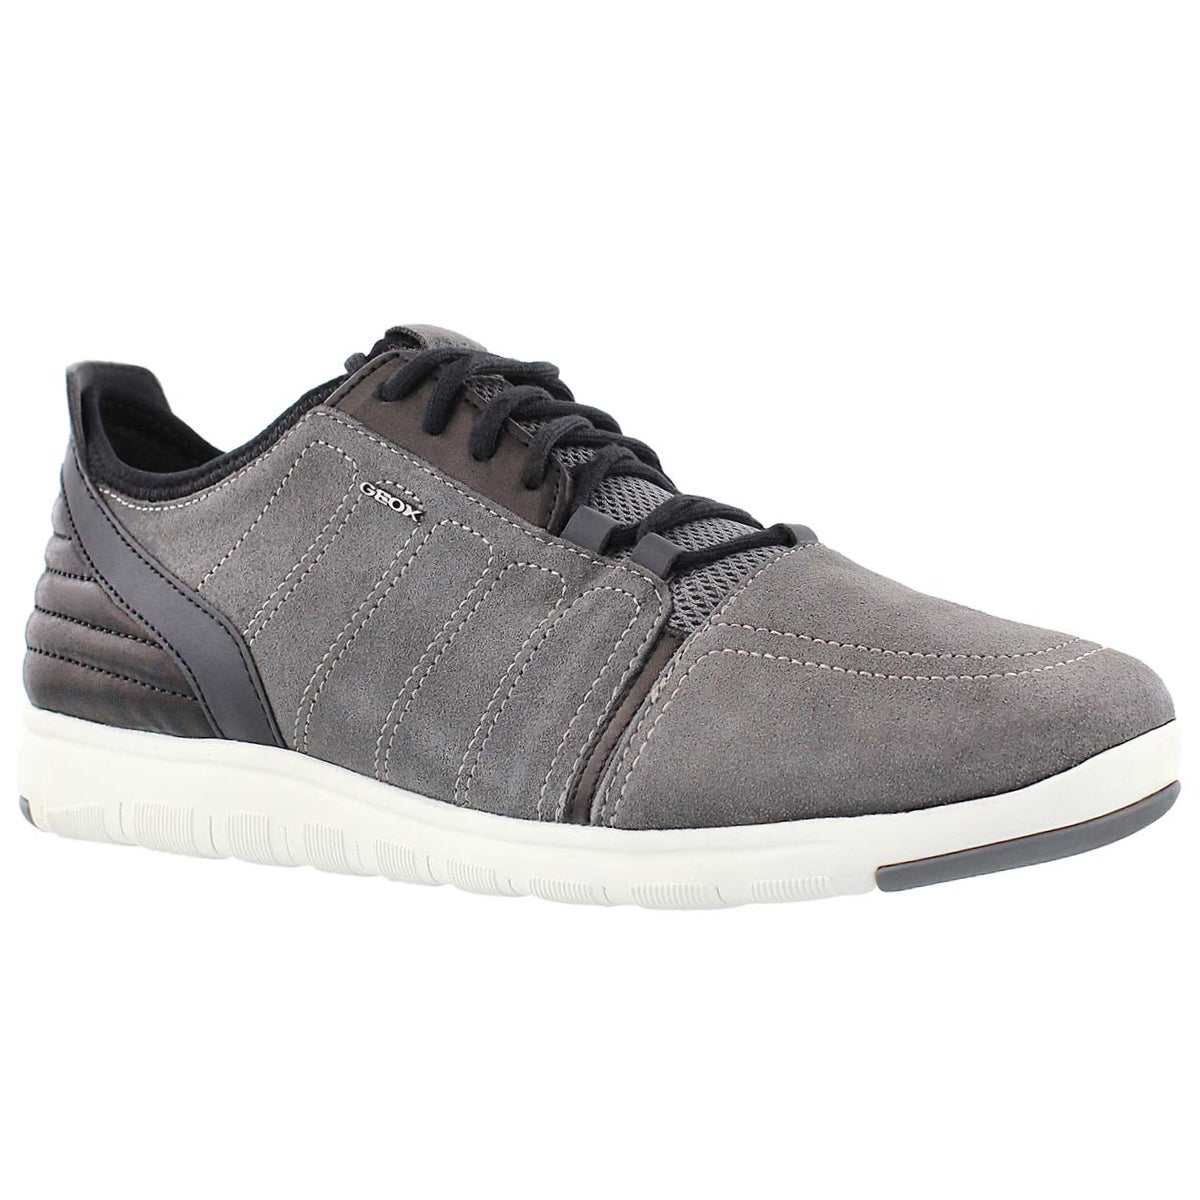 Mns Xunday 2Fit gry/blk lace up runner